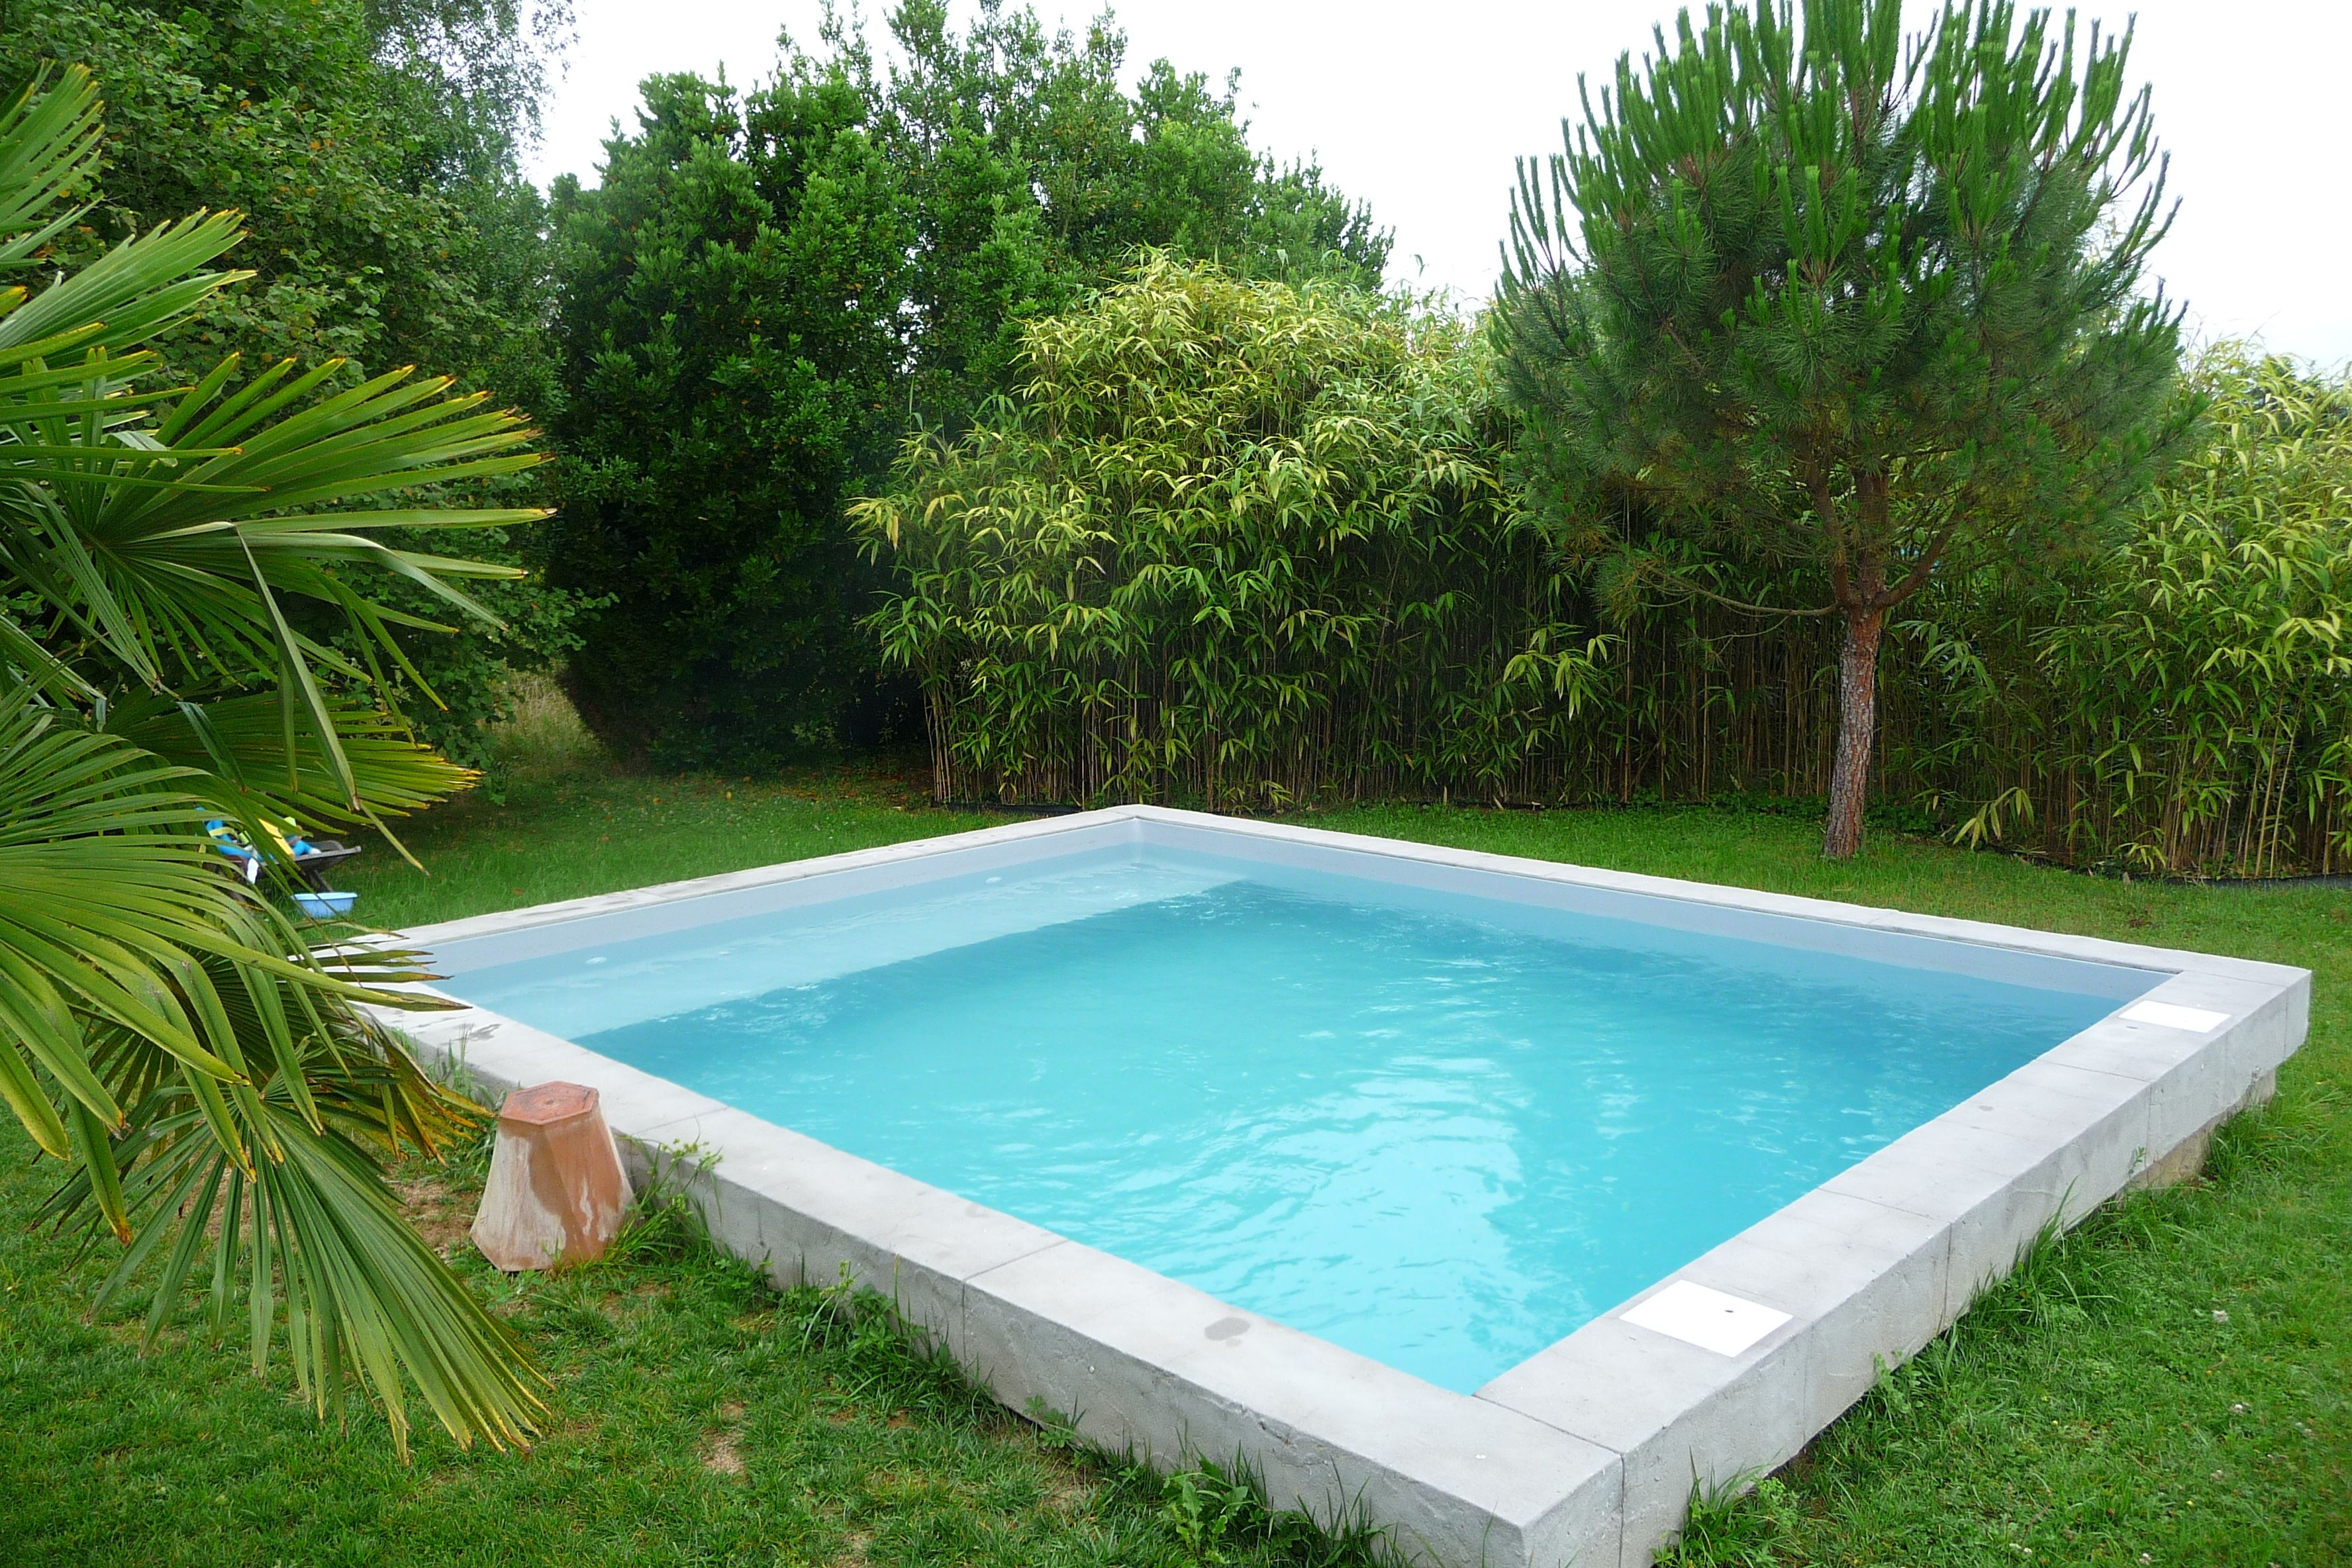 petite piscine bassin liner couleur gris clair piscines pinterest swimming pools small. Black Bedroom Furniture Sets. Home Design Ideas